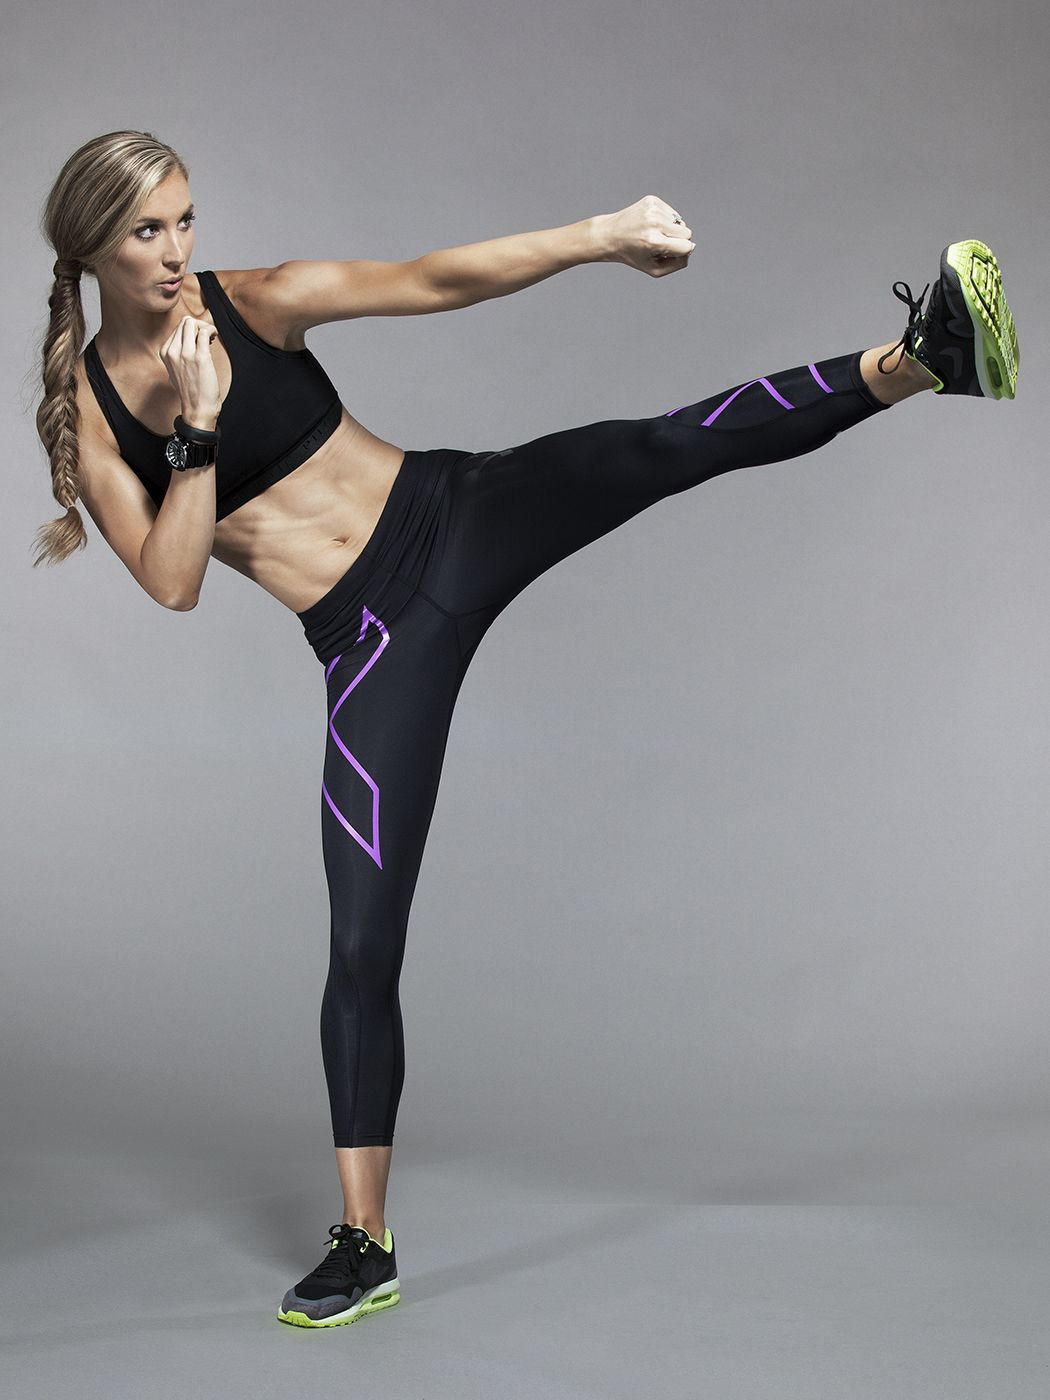 8029a3694edefa ... Workout Clothes and Gear, Activewear, and Swimwear by at. 2XU  Compression Tights in Black/Purple Lacquer